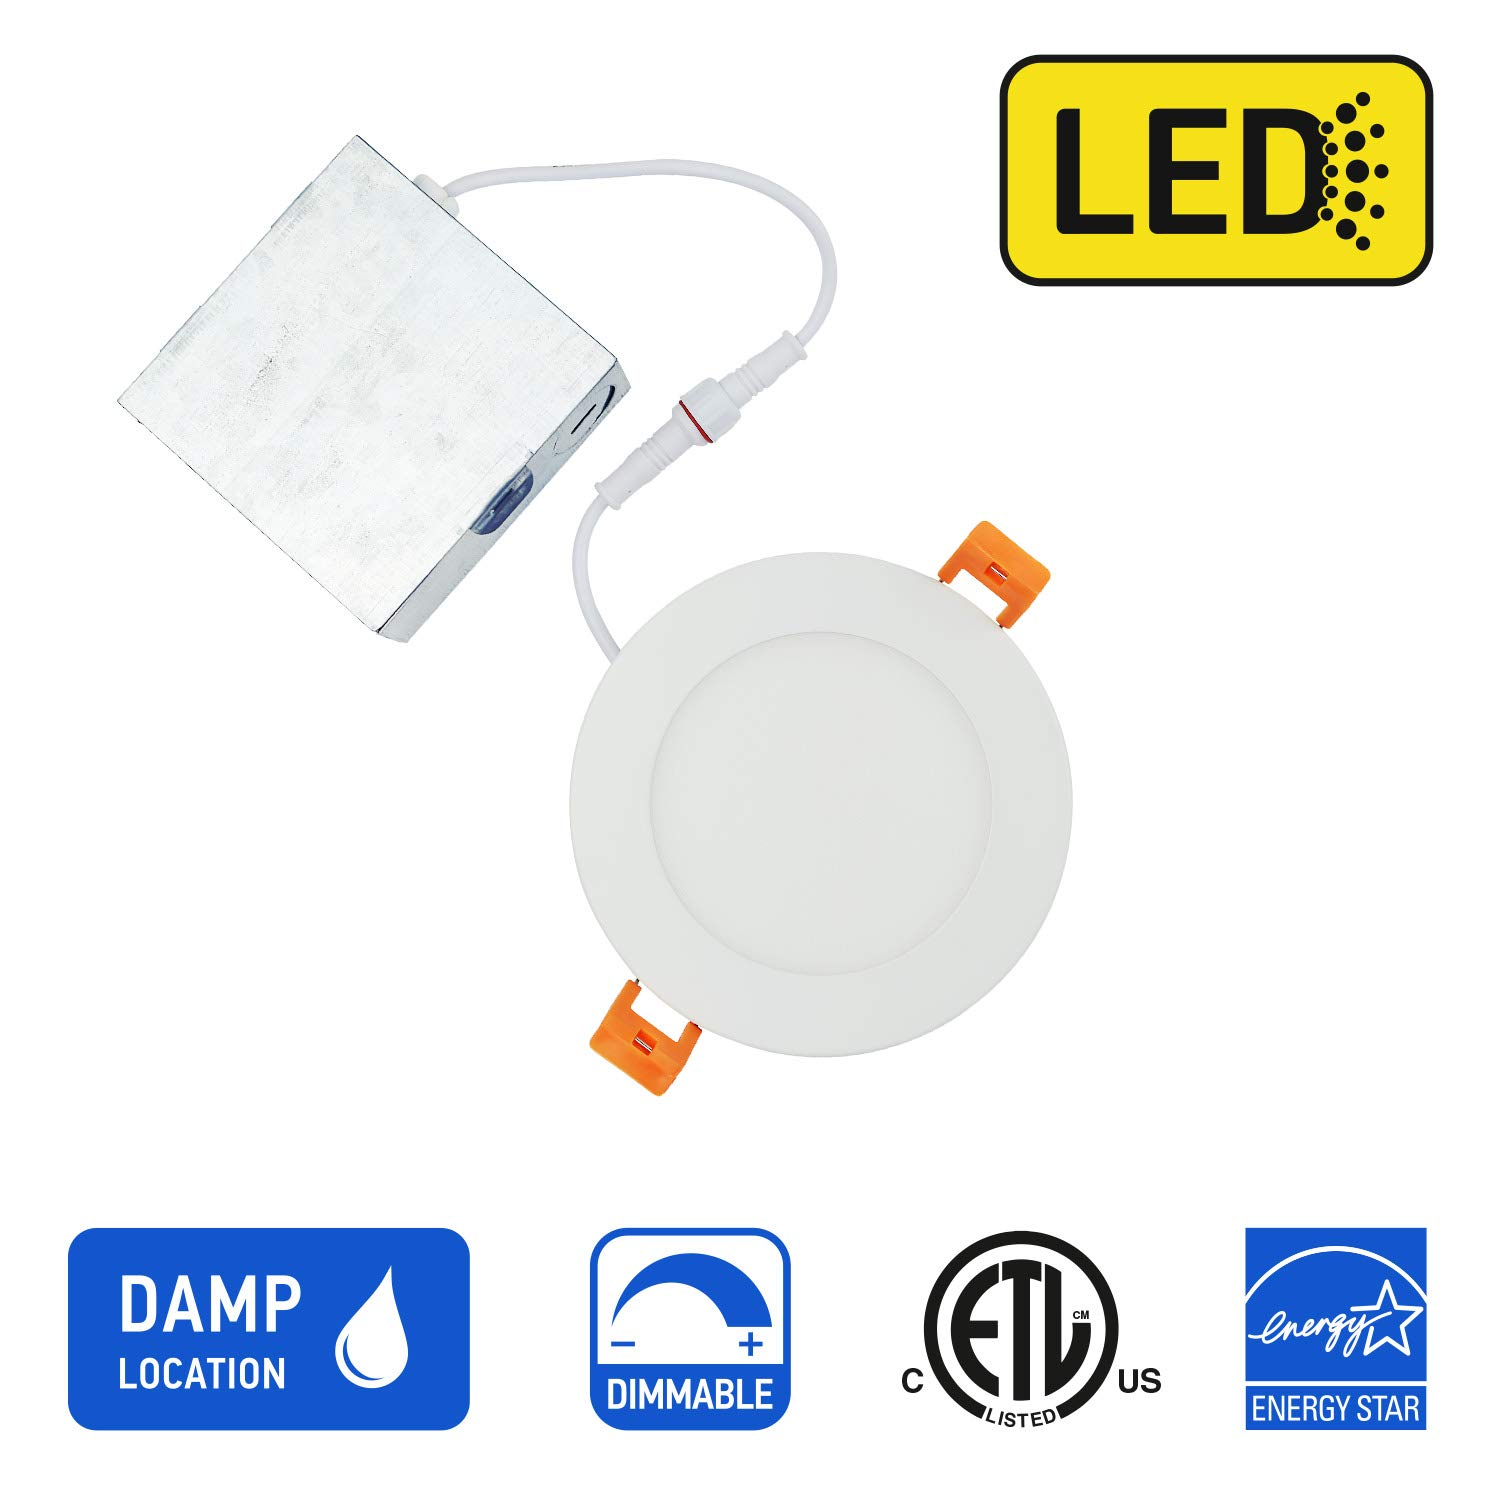 OSTWIN 4 inch LED Recessed PROFILE SLIM ROUND PANEL Light with Junction Box, Dimmable, 12W (90 Watt Replacement), 3000K (Warm White), 900 Lumens, No Can Needed, ETL and Energy Star Listed